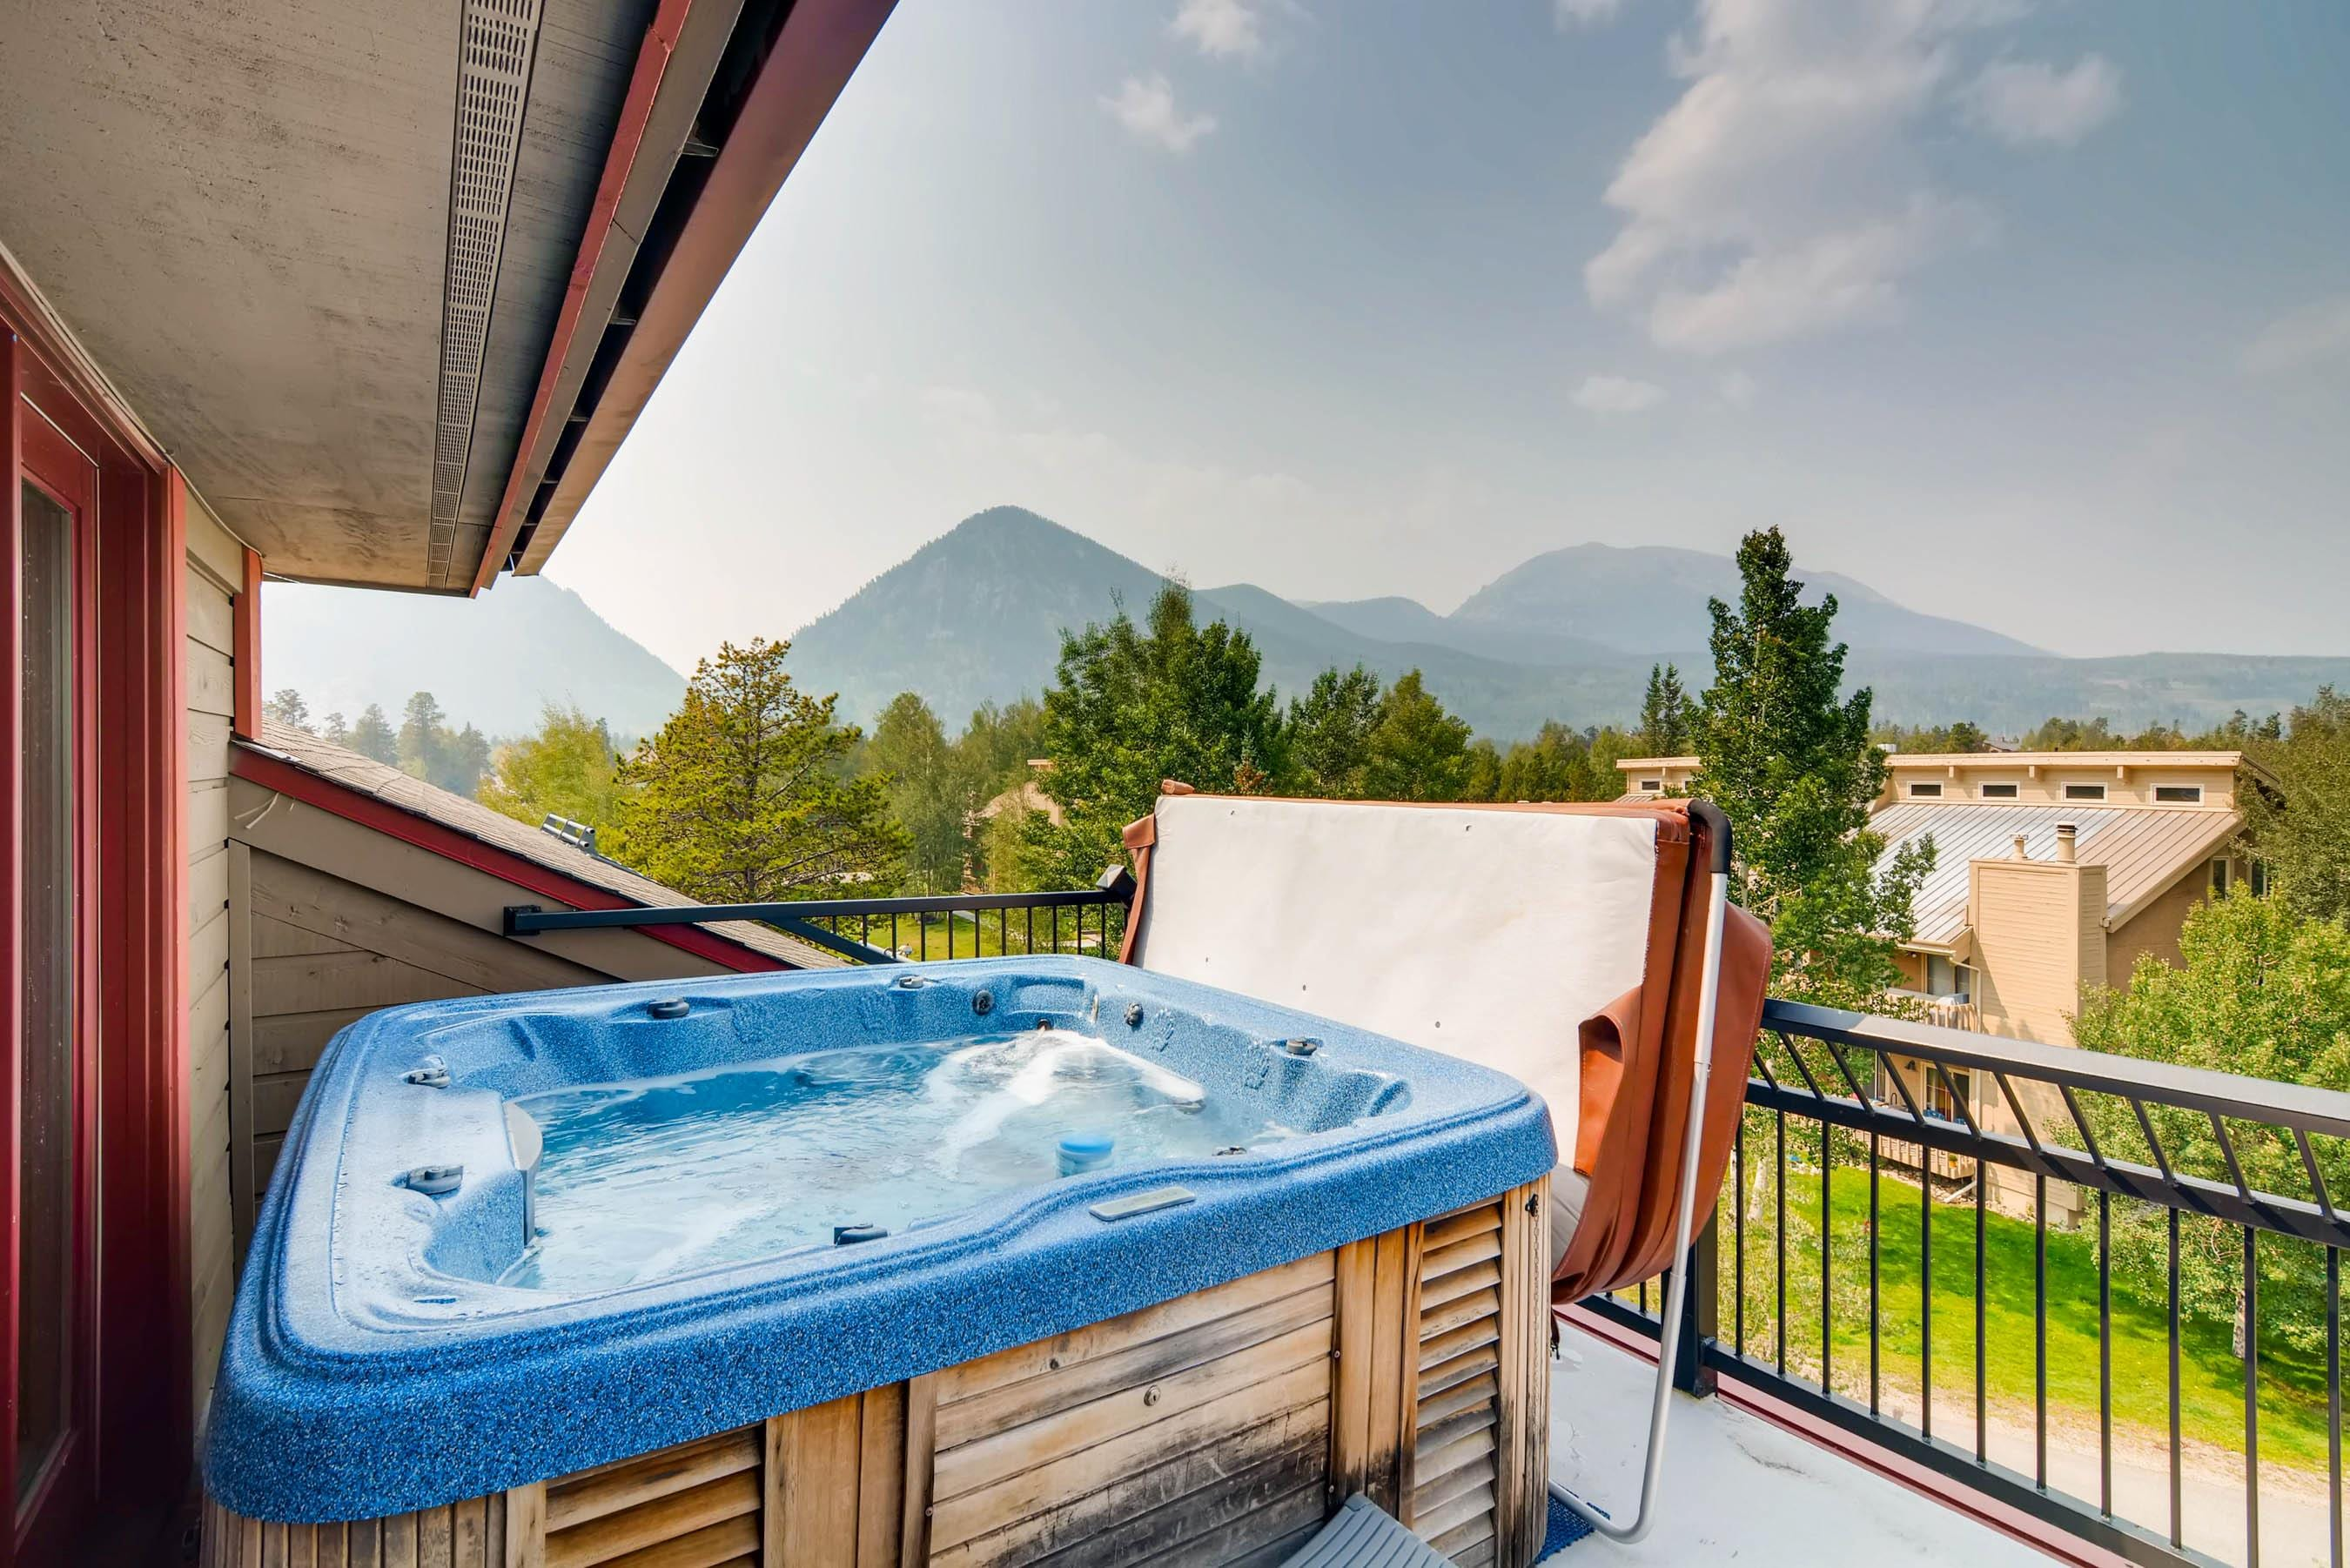 Soak in the outdoor hot tub and drink in the mountain views.